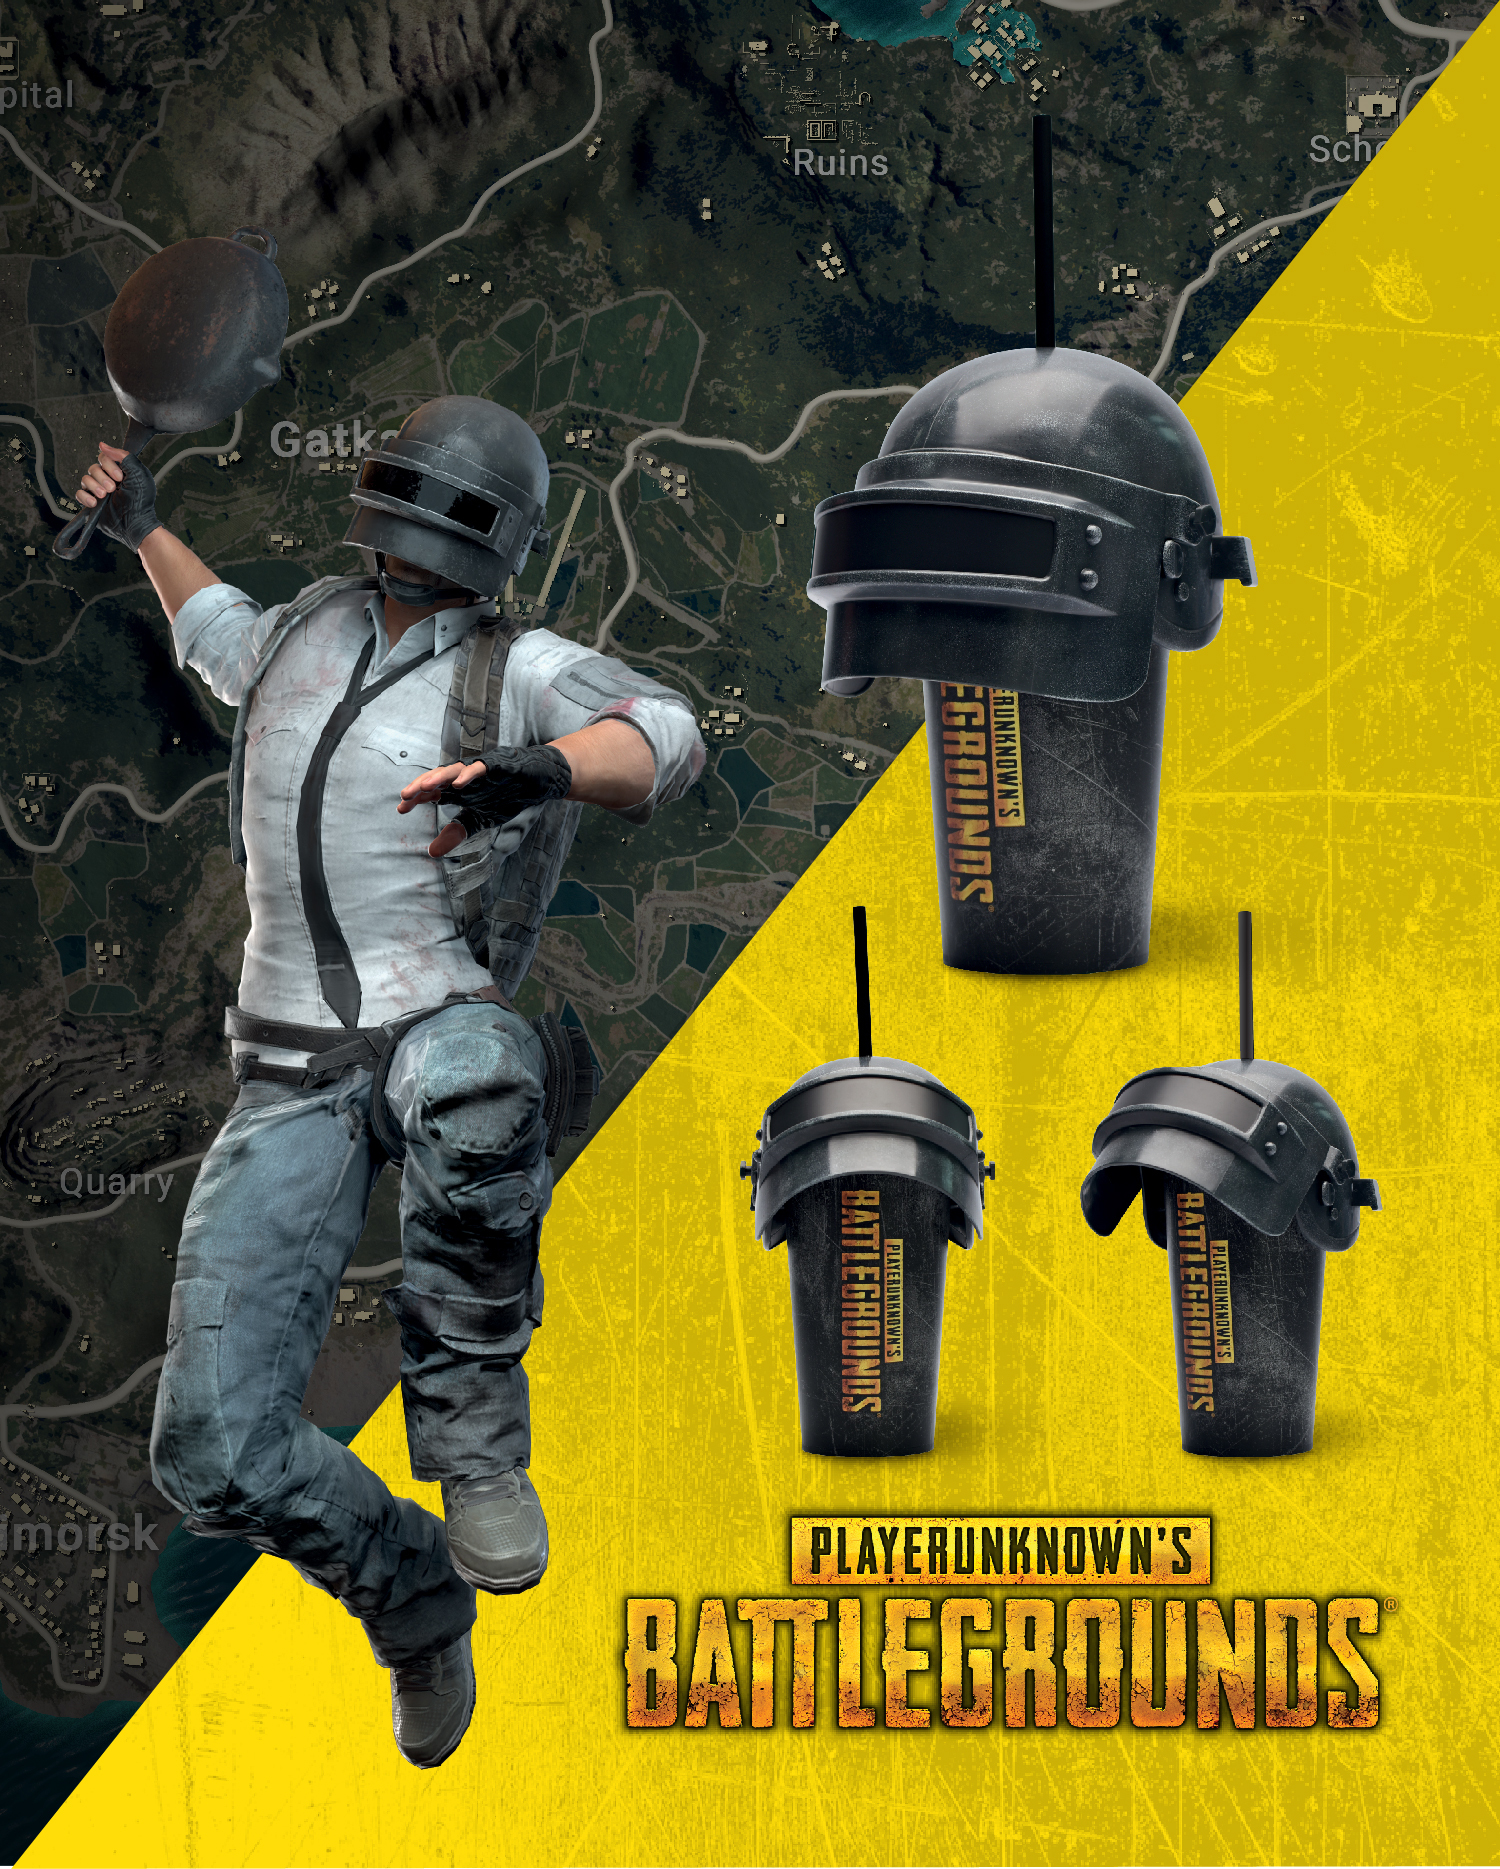 'PUBG BATTLEGROUNDS, 2019' - HELMET CUP - LOTTE CINEMA